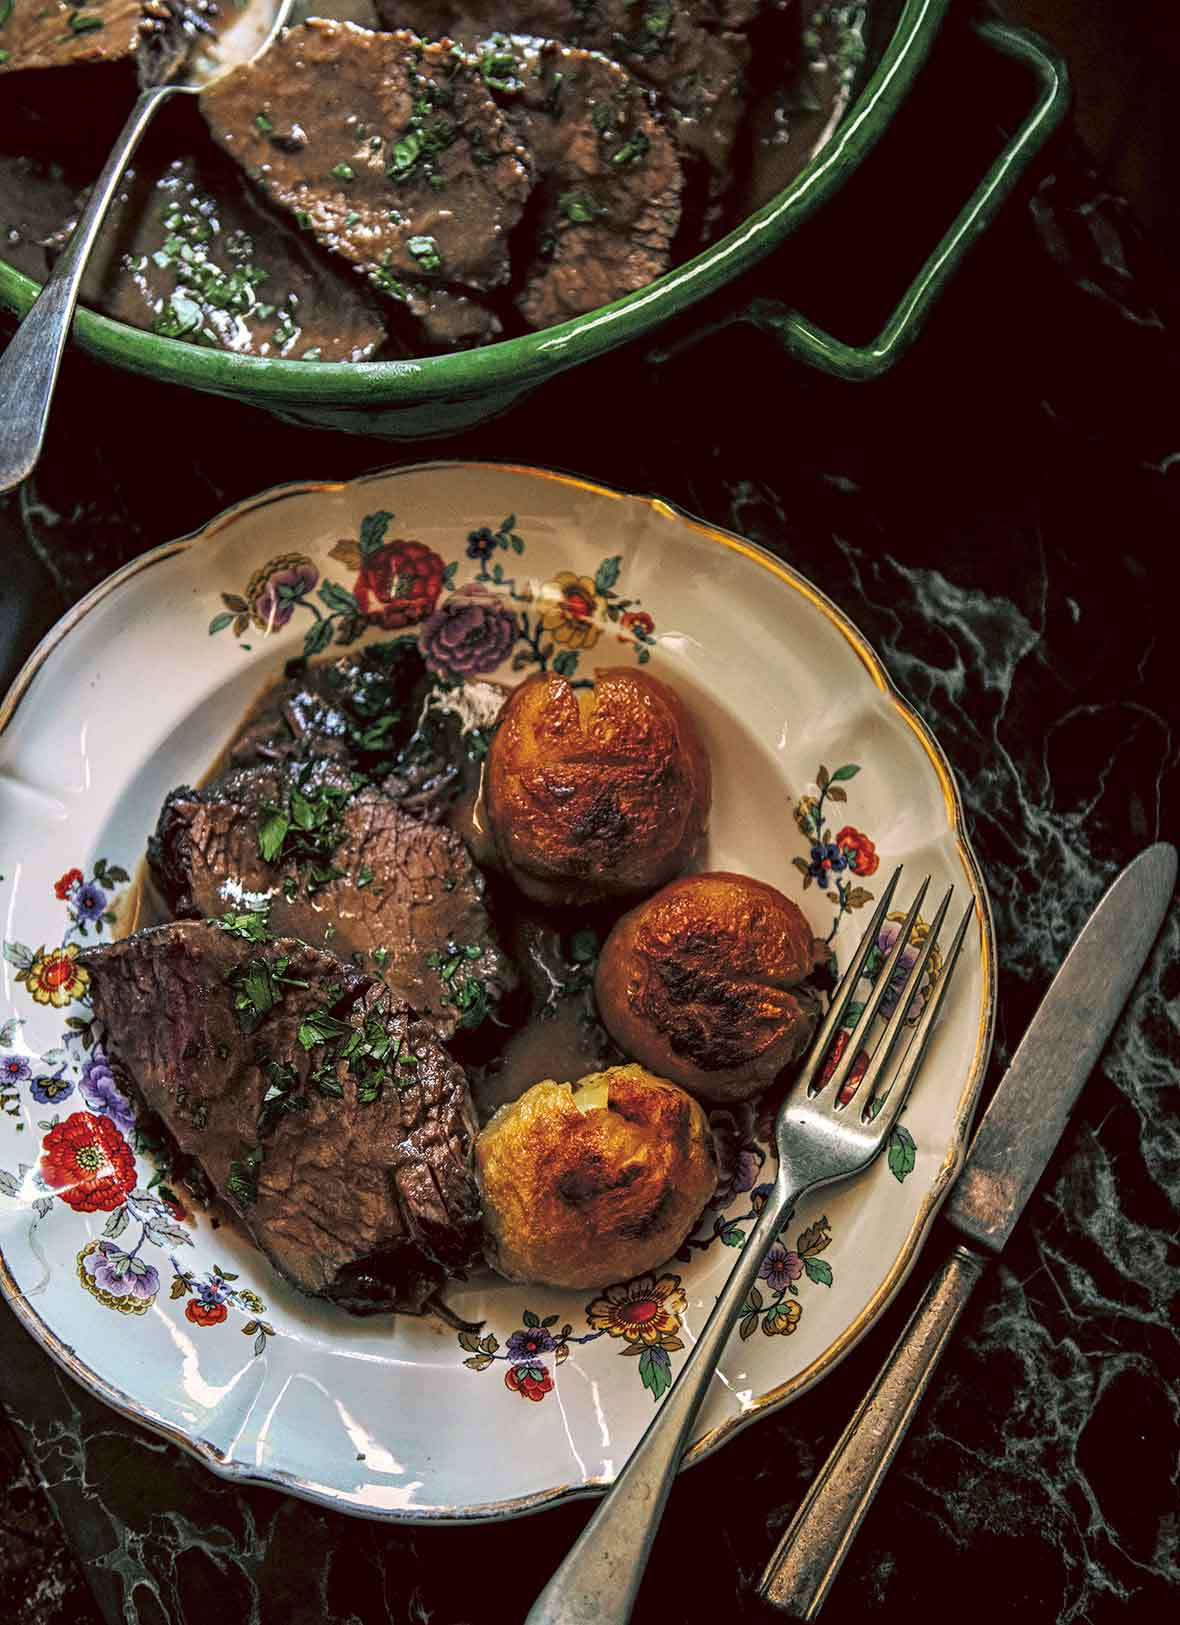 A china plate with three slices of beef braised in red wine and sprinkled with parsley, and three roasted potatoes